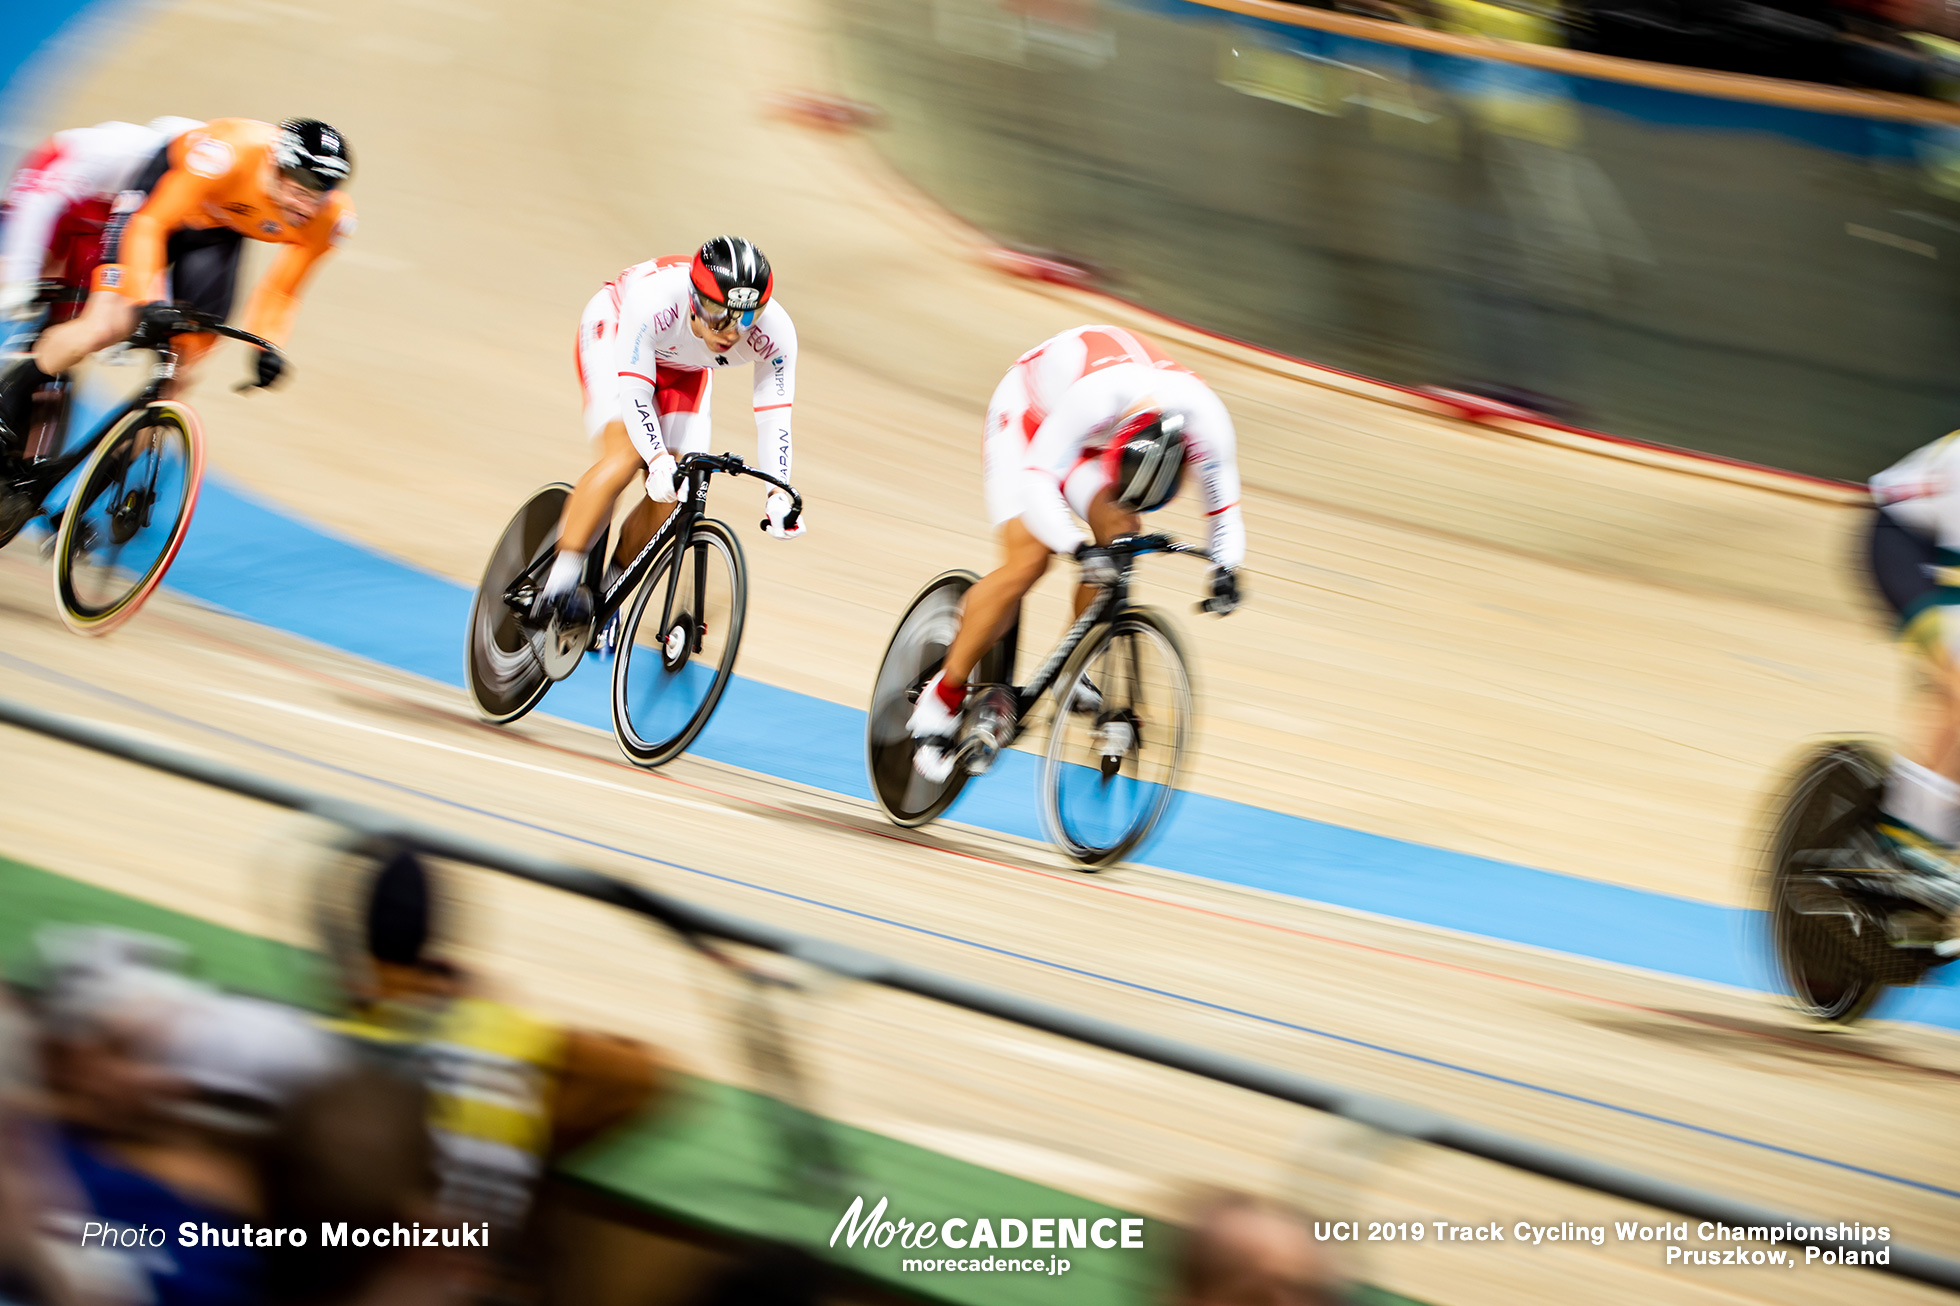 Men's Keirin 1st Round Repechage / 2019 Track Cycling World Championships Pruszków, Poland